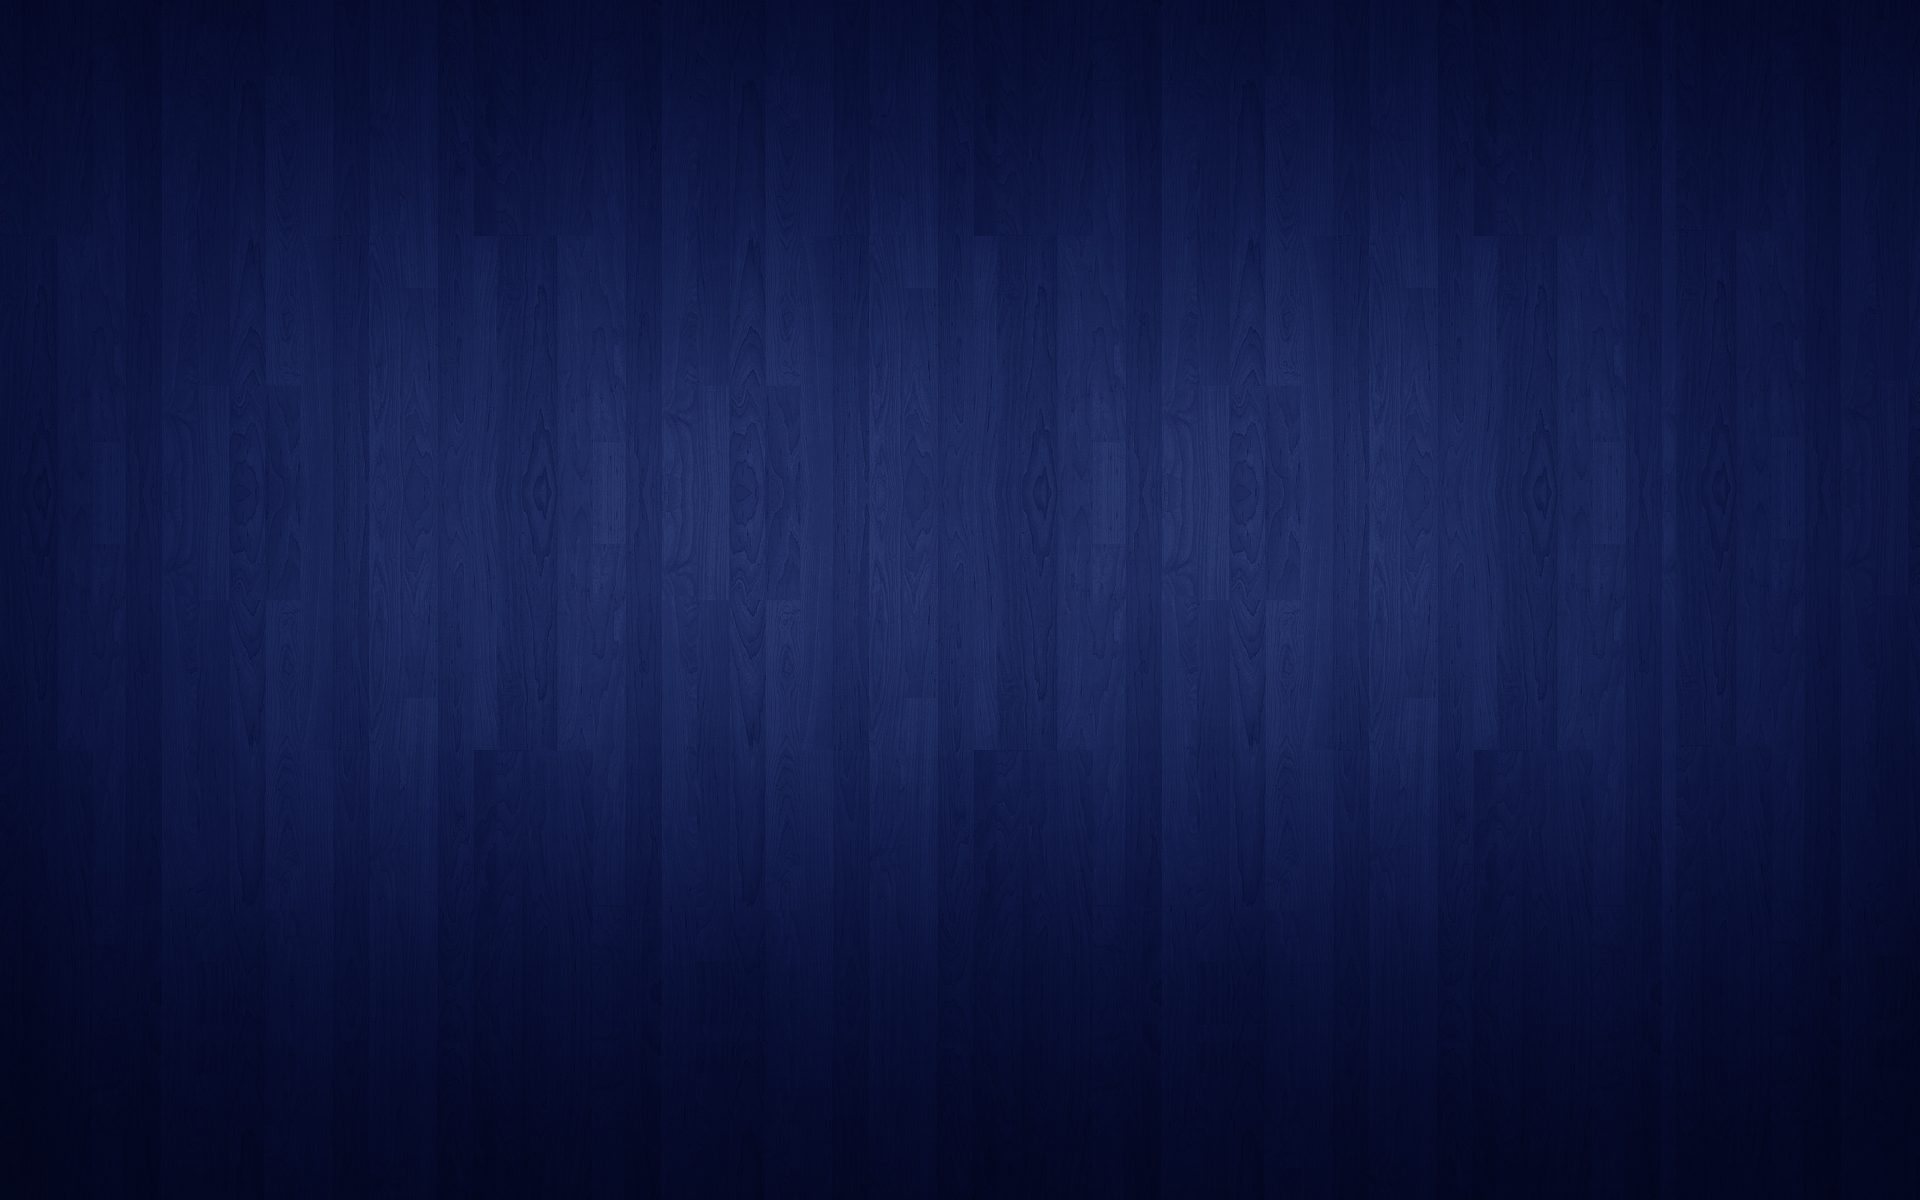 JIC31 Full HD Background Images For Websites (Mobile, PC, iPhone)